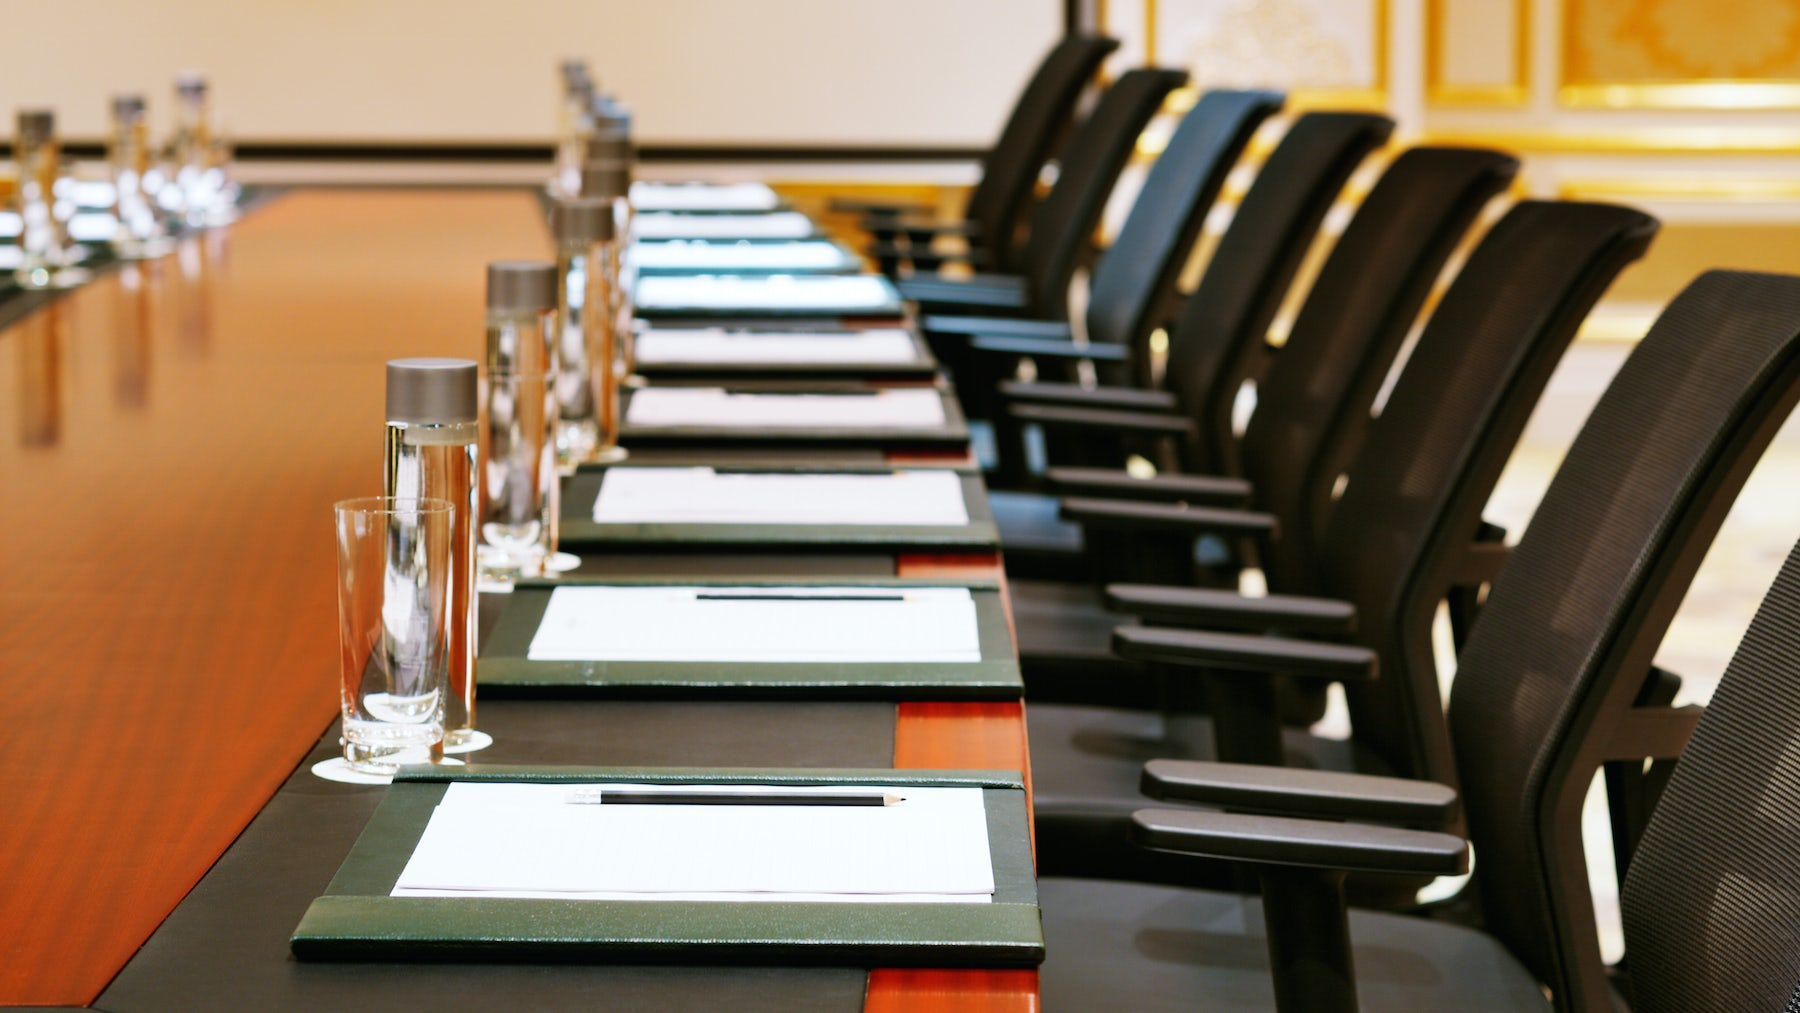 Digital will now have a place in the boardroom   Source: Shutterstock